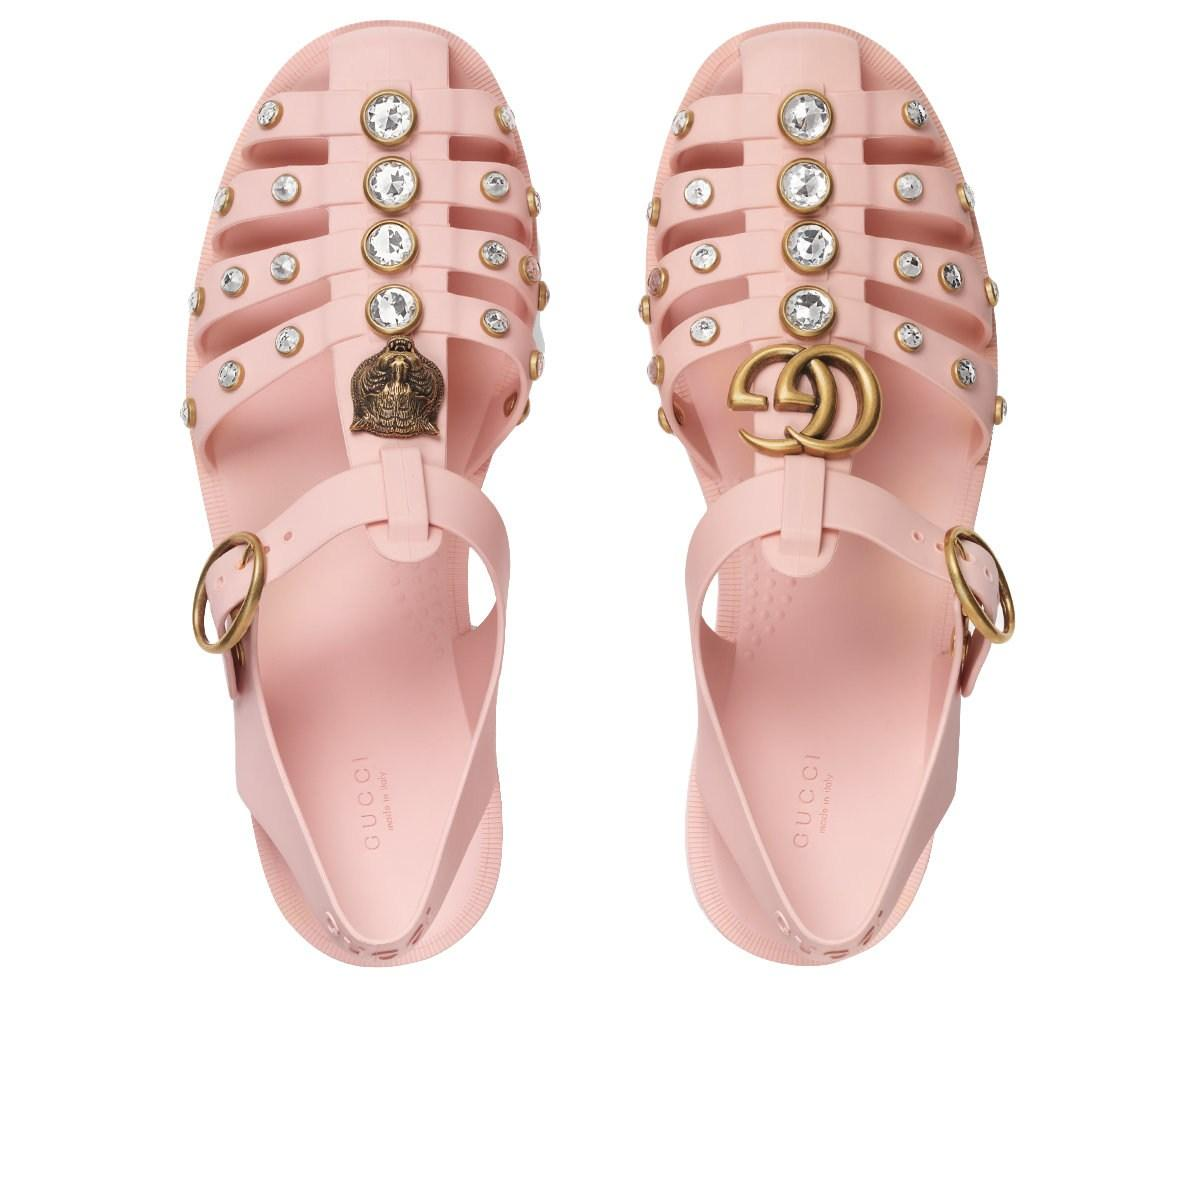 5934e8d79 Gucci Rubber Sandal With Crystals in Pink - Lyst